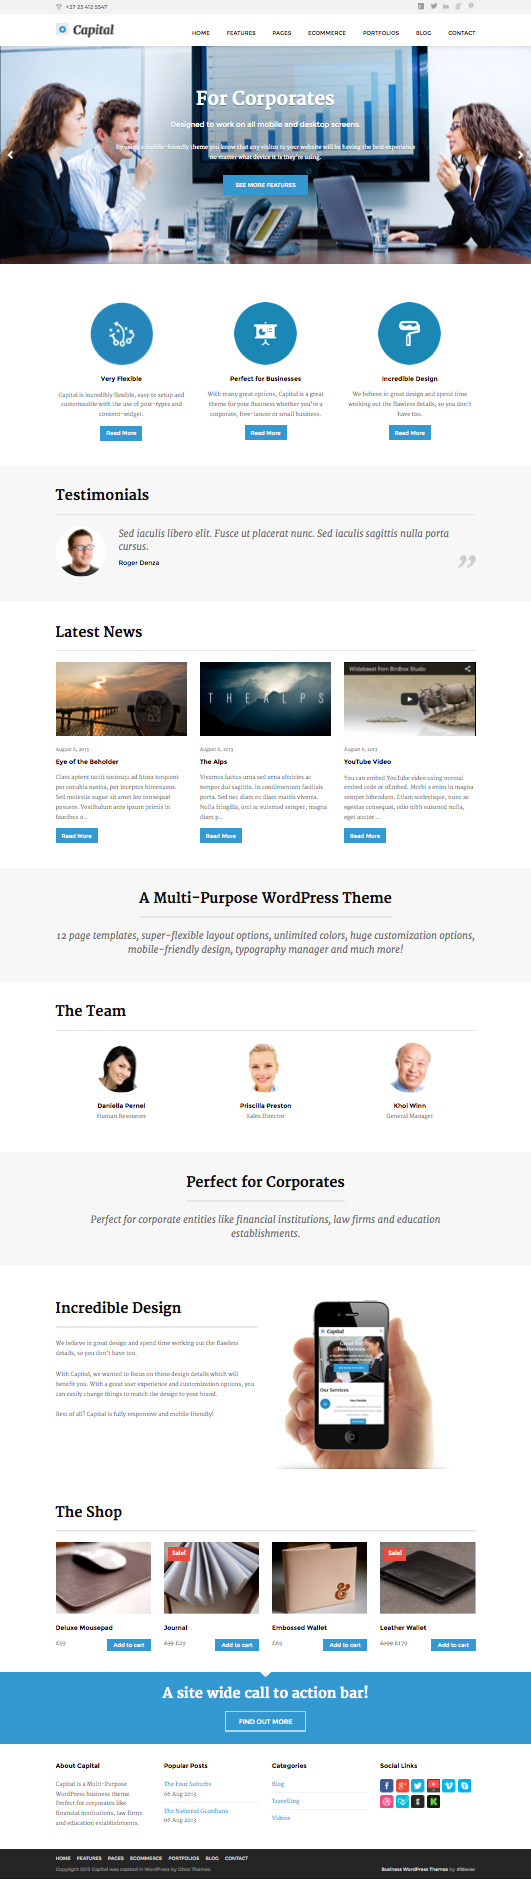 Capital WordPress Corporate Look & Feel Theme